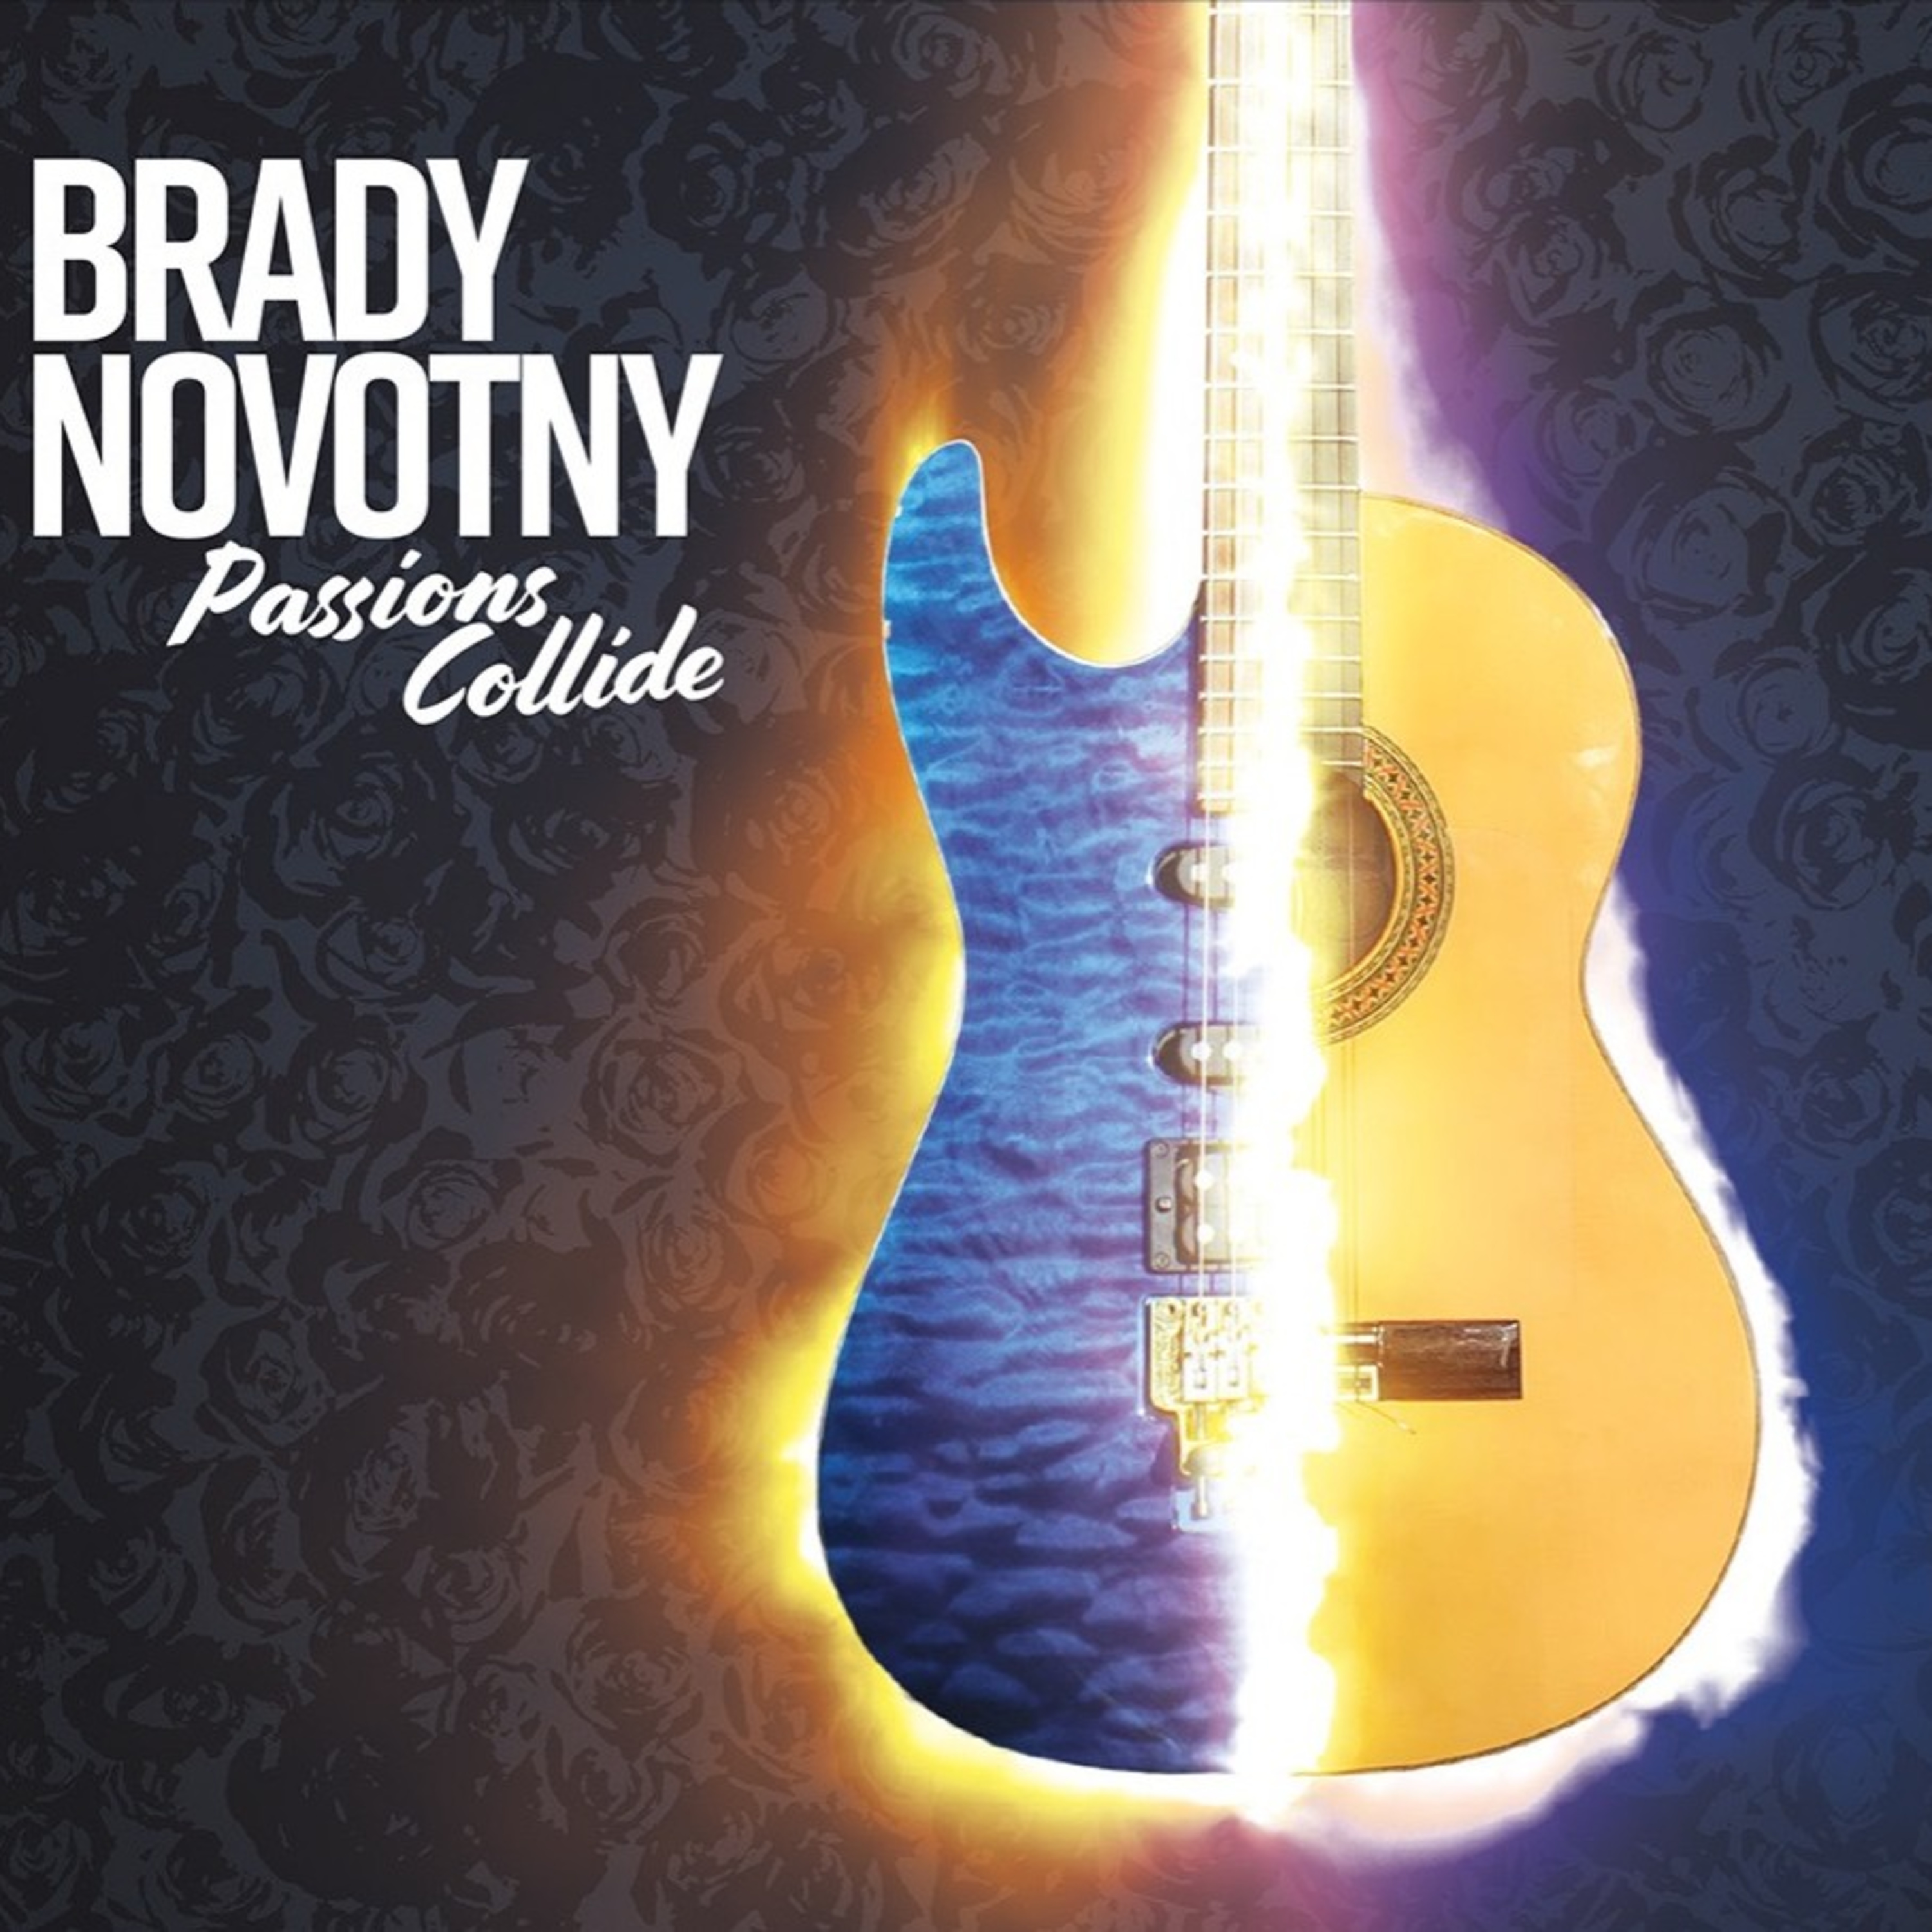 Brady Novotny Talks About His Music, His Ministry and Much More